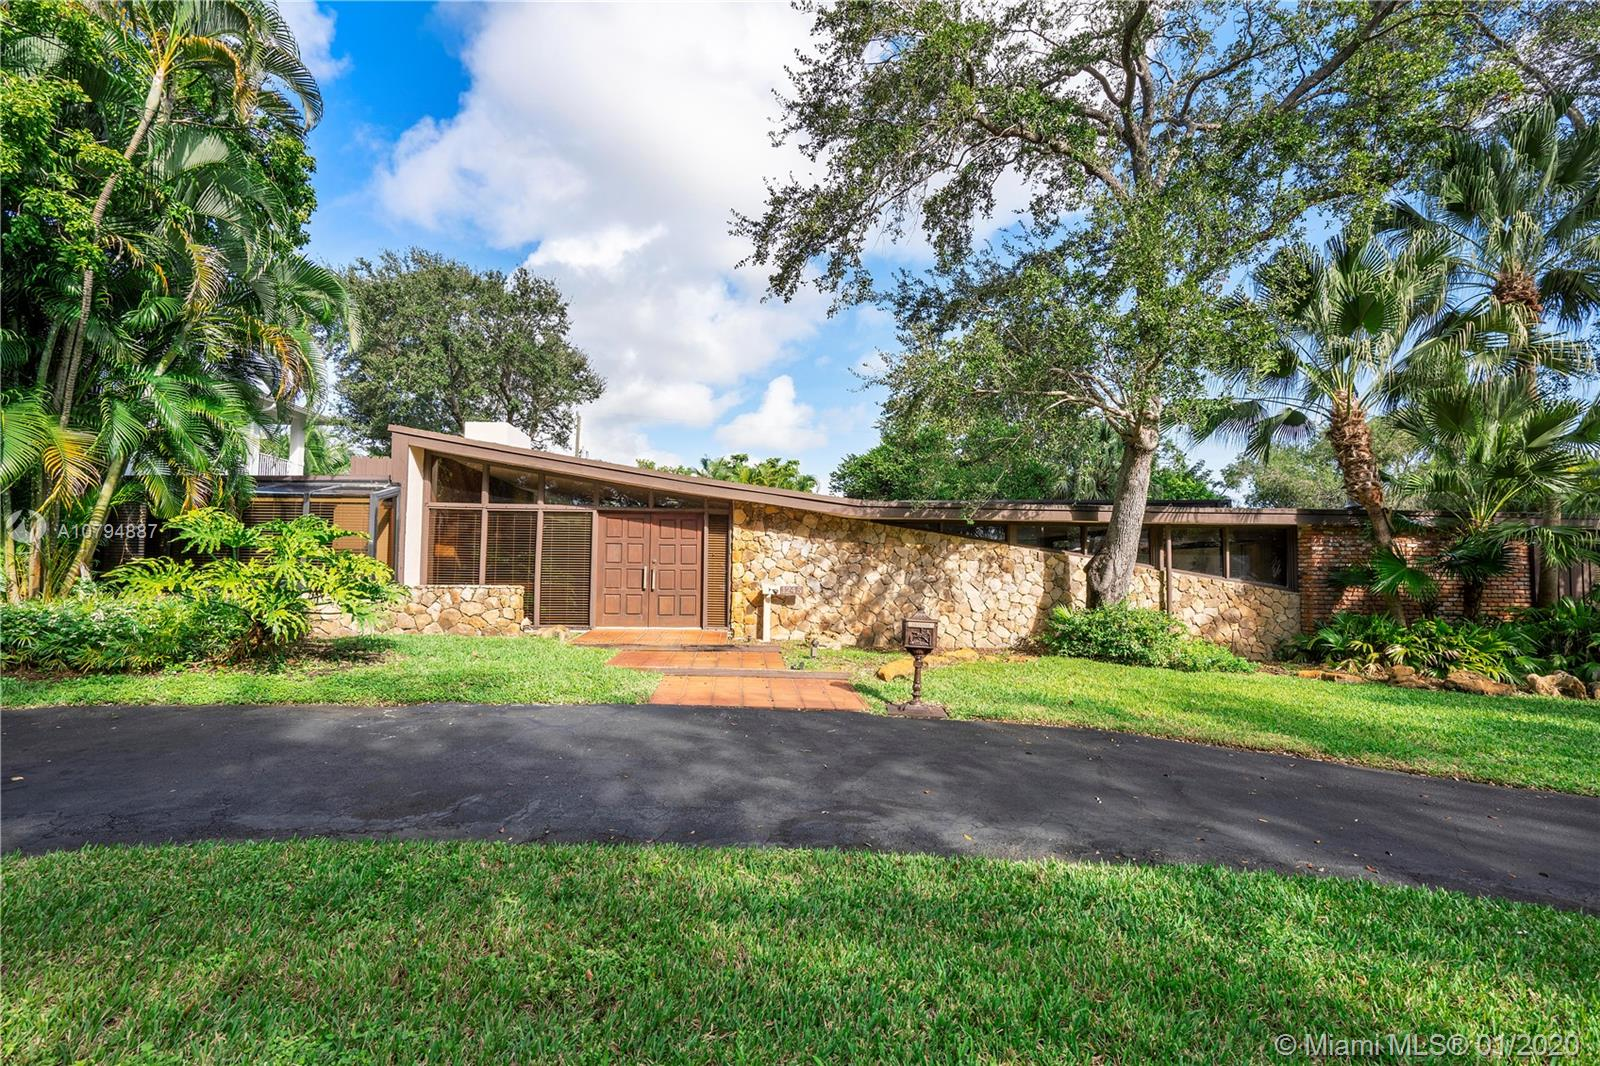 1245 NE 94th St, Miami Shores, Florida 33138, 3 Bedrooms Bedrooms, ,3 BathroomsBathrooms,Residential,For Sale,1245 NE 94th St,A10794887